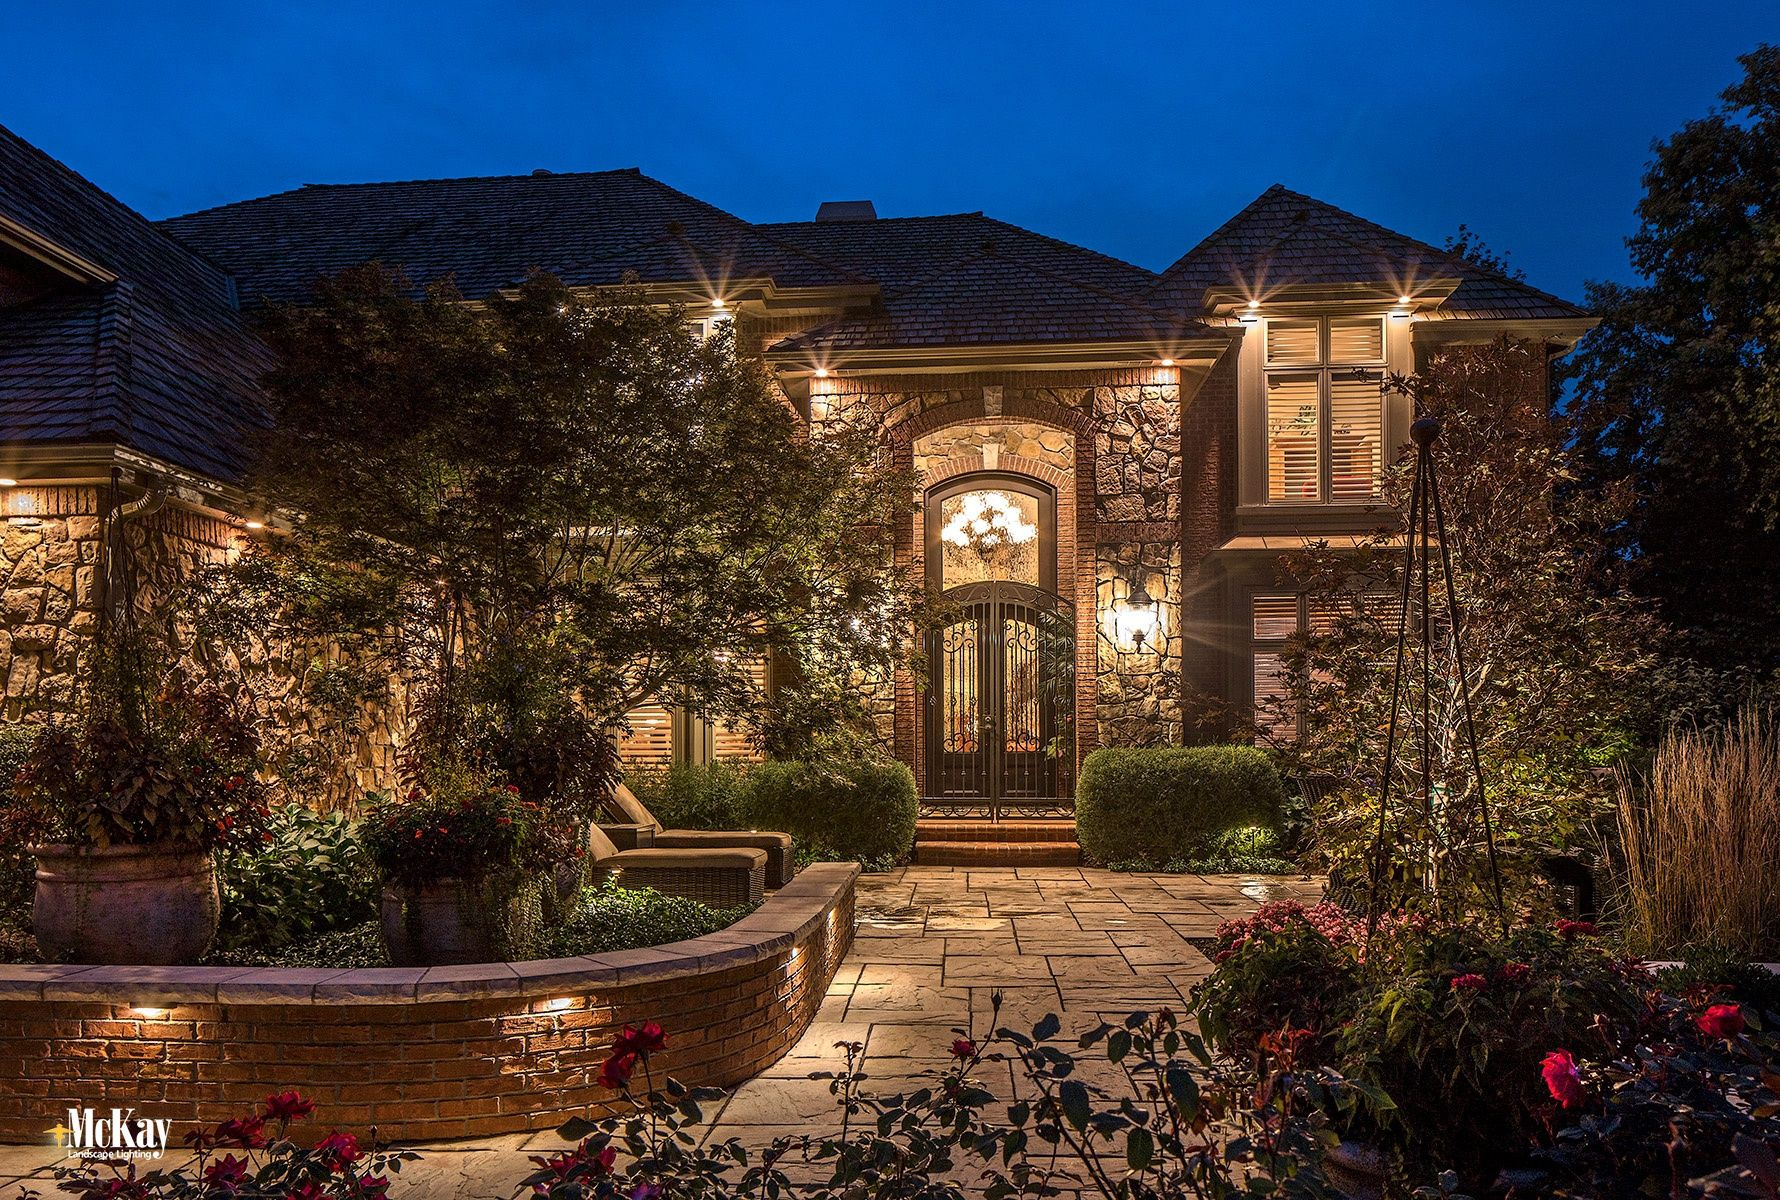 Lighting Stores Omaha >> Selecting A Material For Your Outdoor Lighting Fixtures